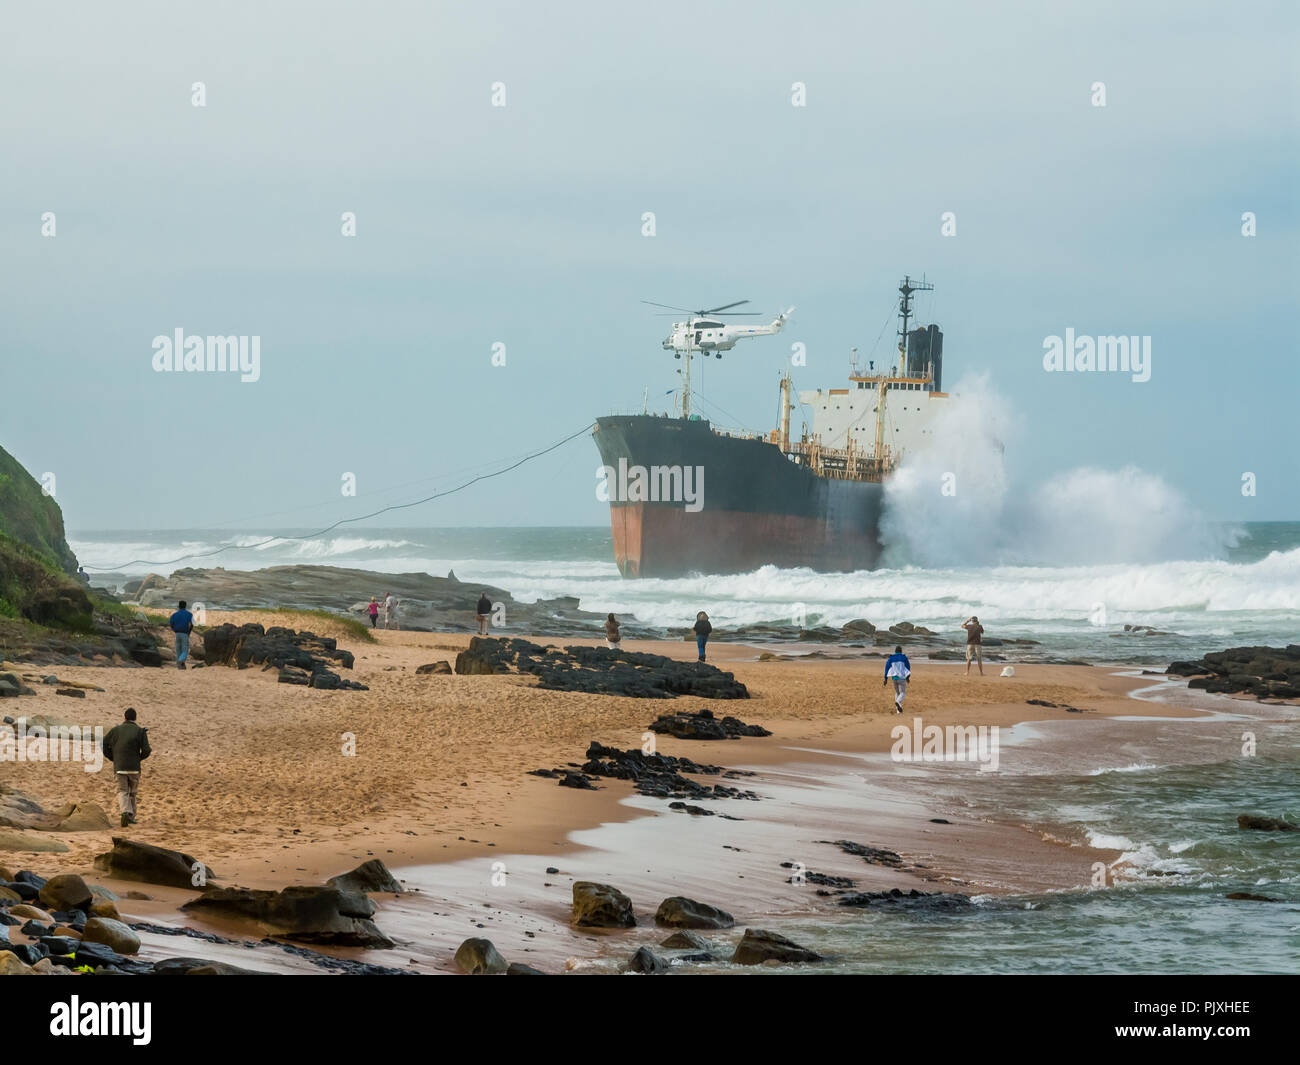 Rescue helicopter bringing supplies to the Phoenix, a derelict bulk tanker, run aground at Sheffield Beach on Durban's North Coast. - Stock Image